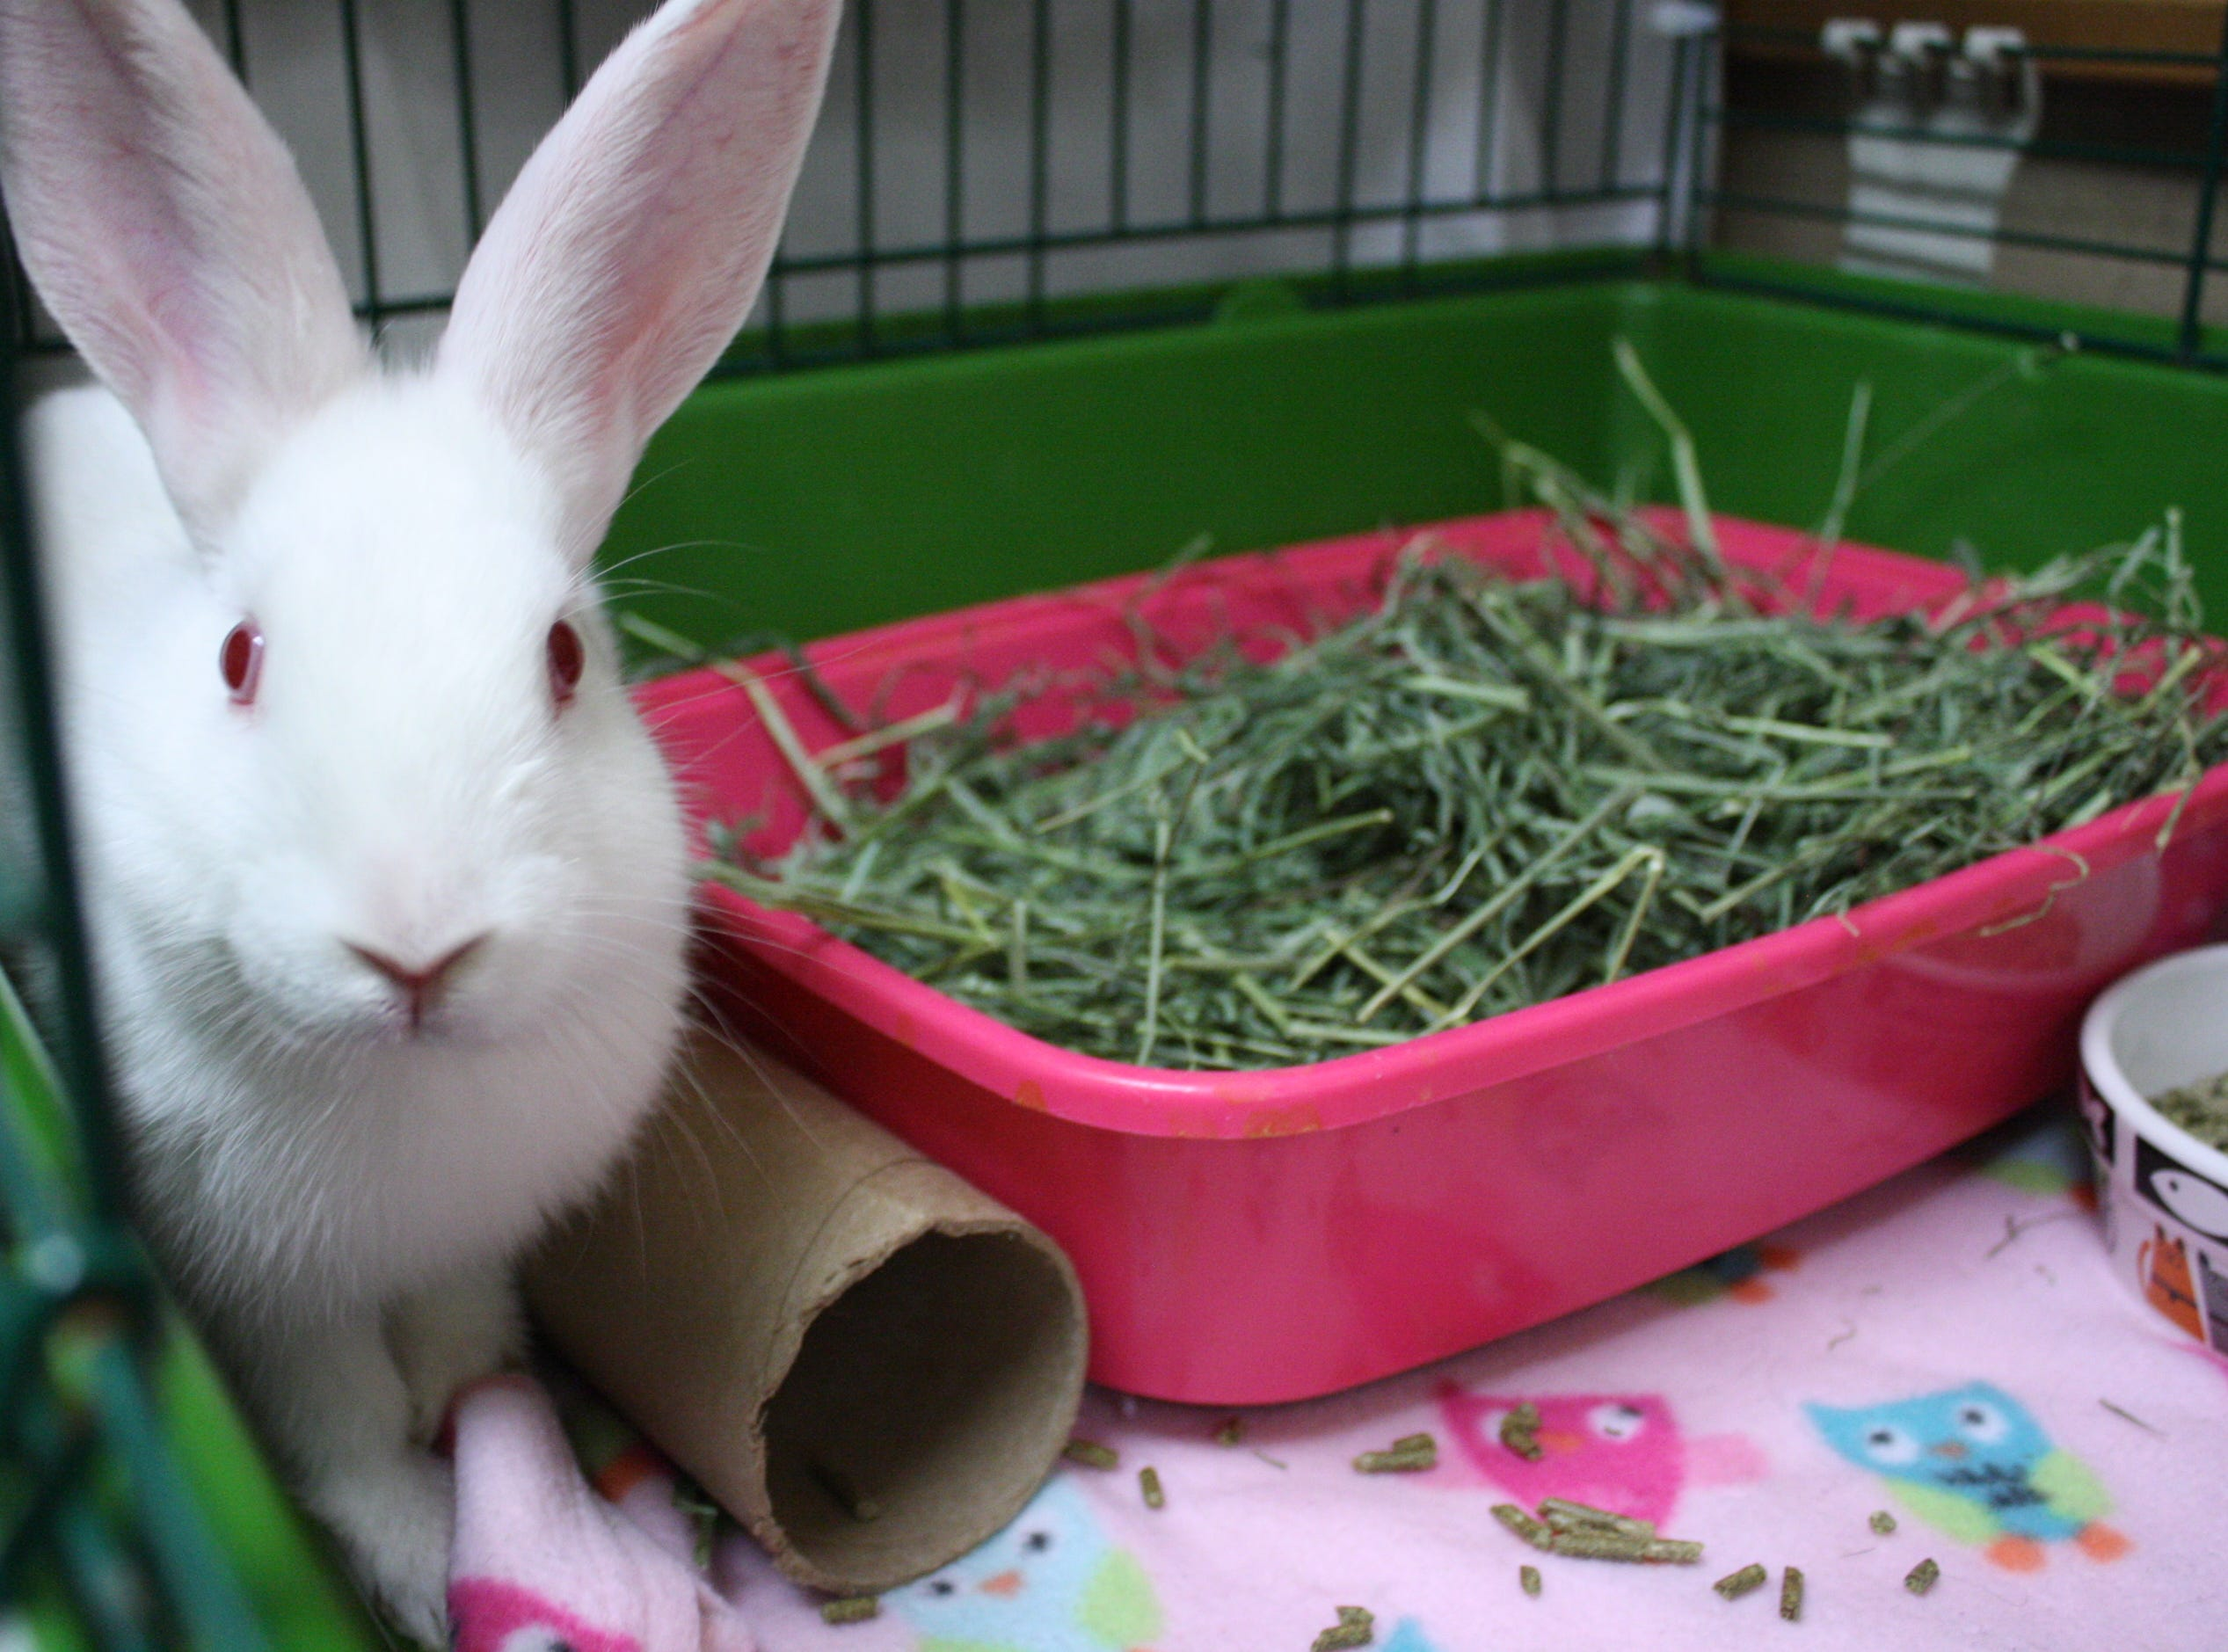 Ivory, a 2-month-old American rabbit, is sweet and hoping for a new home.